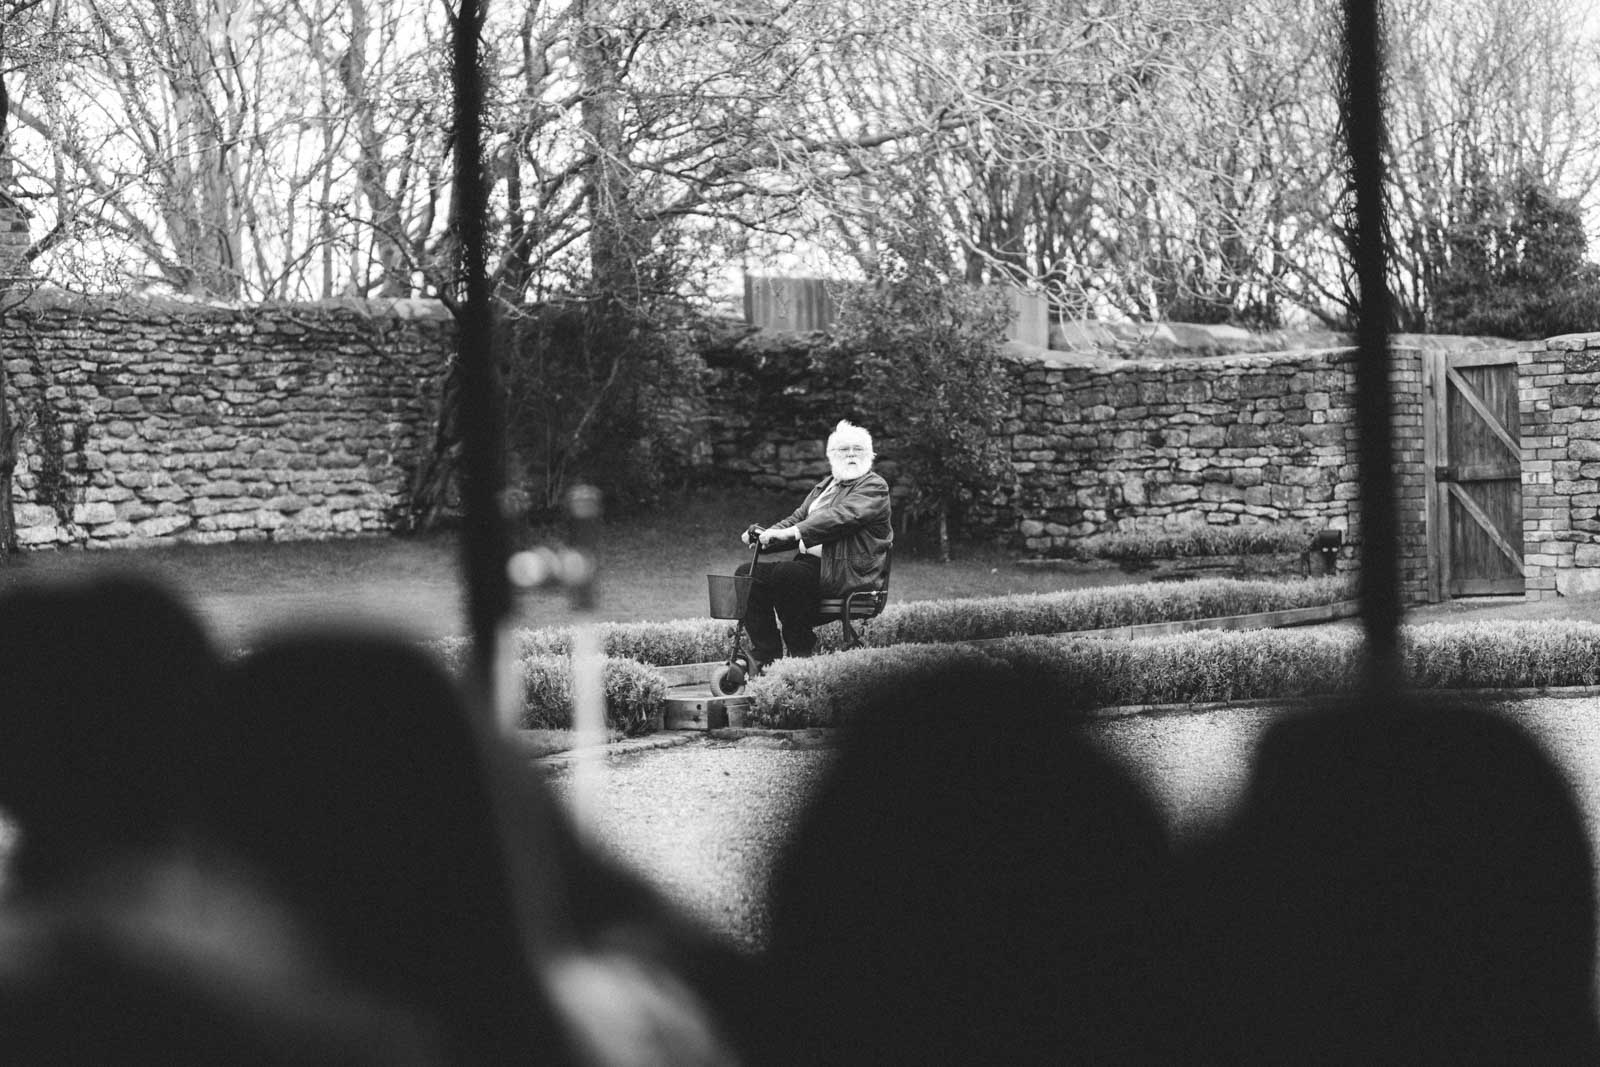 wedding guest making a late entrance on a mobility skooter